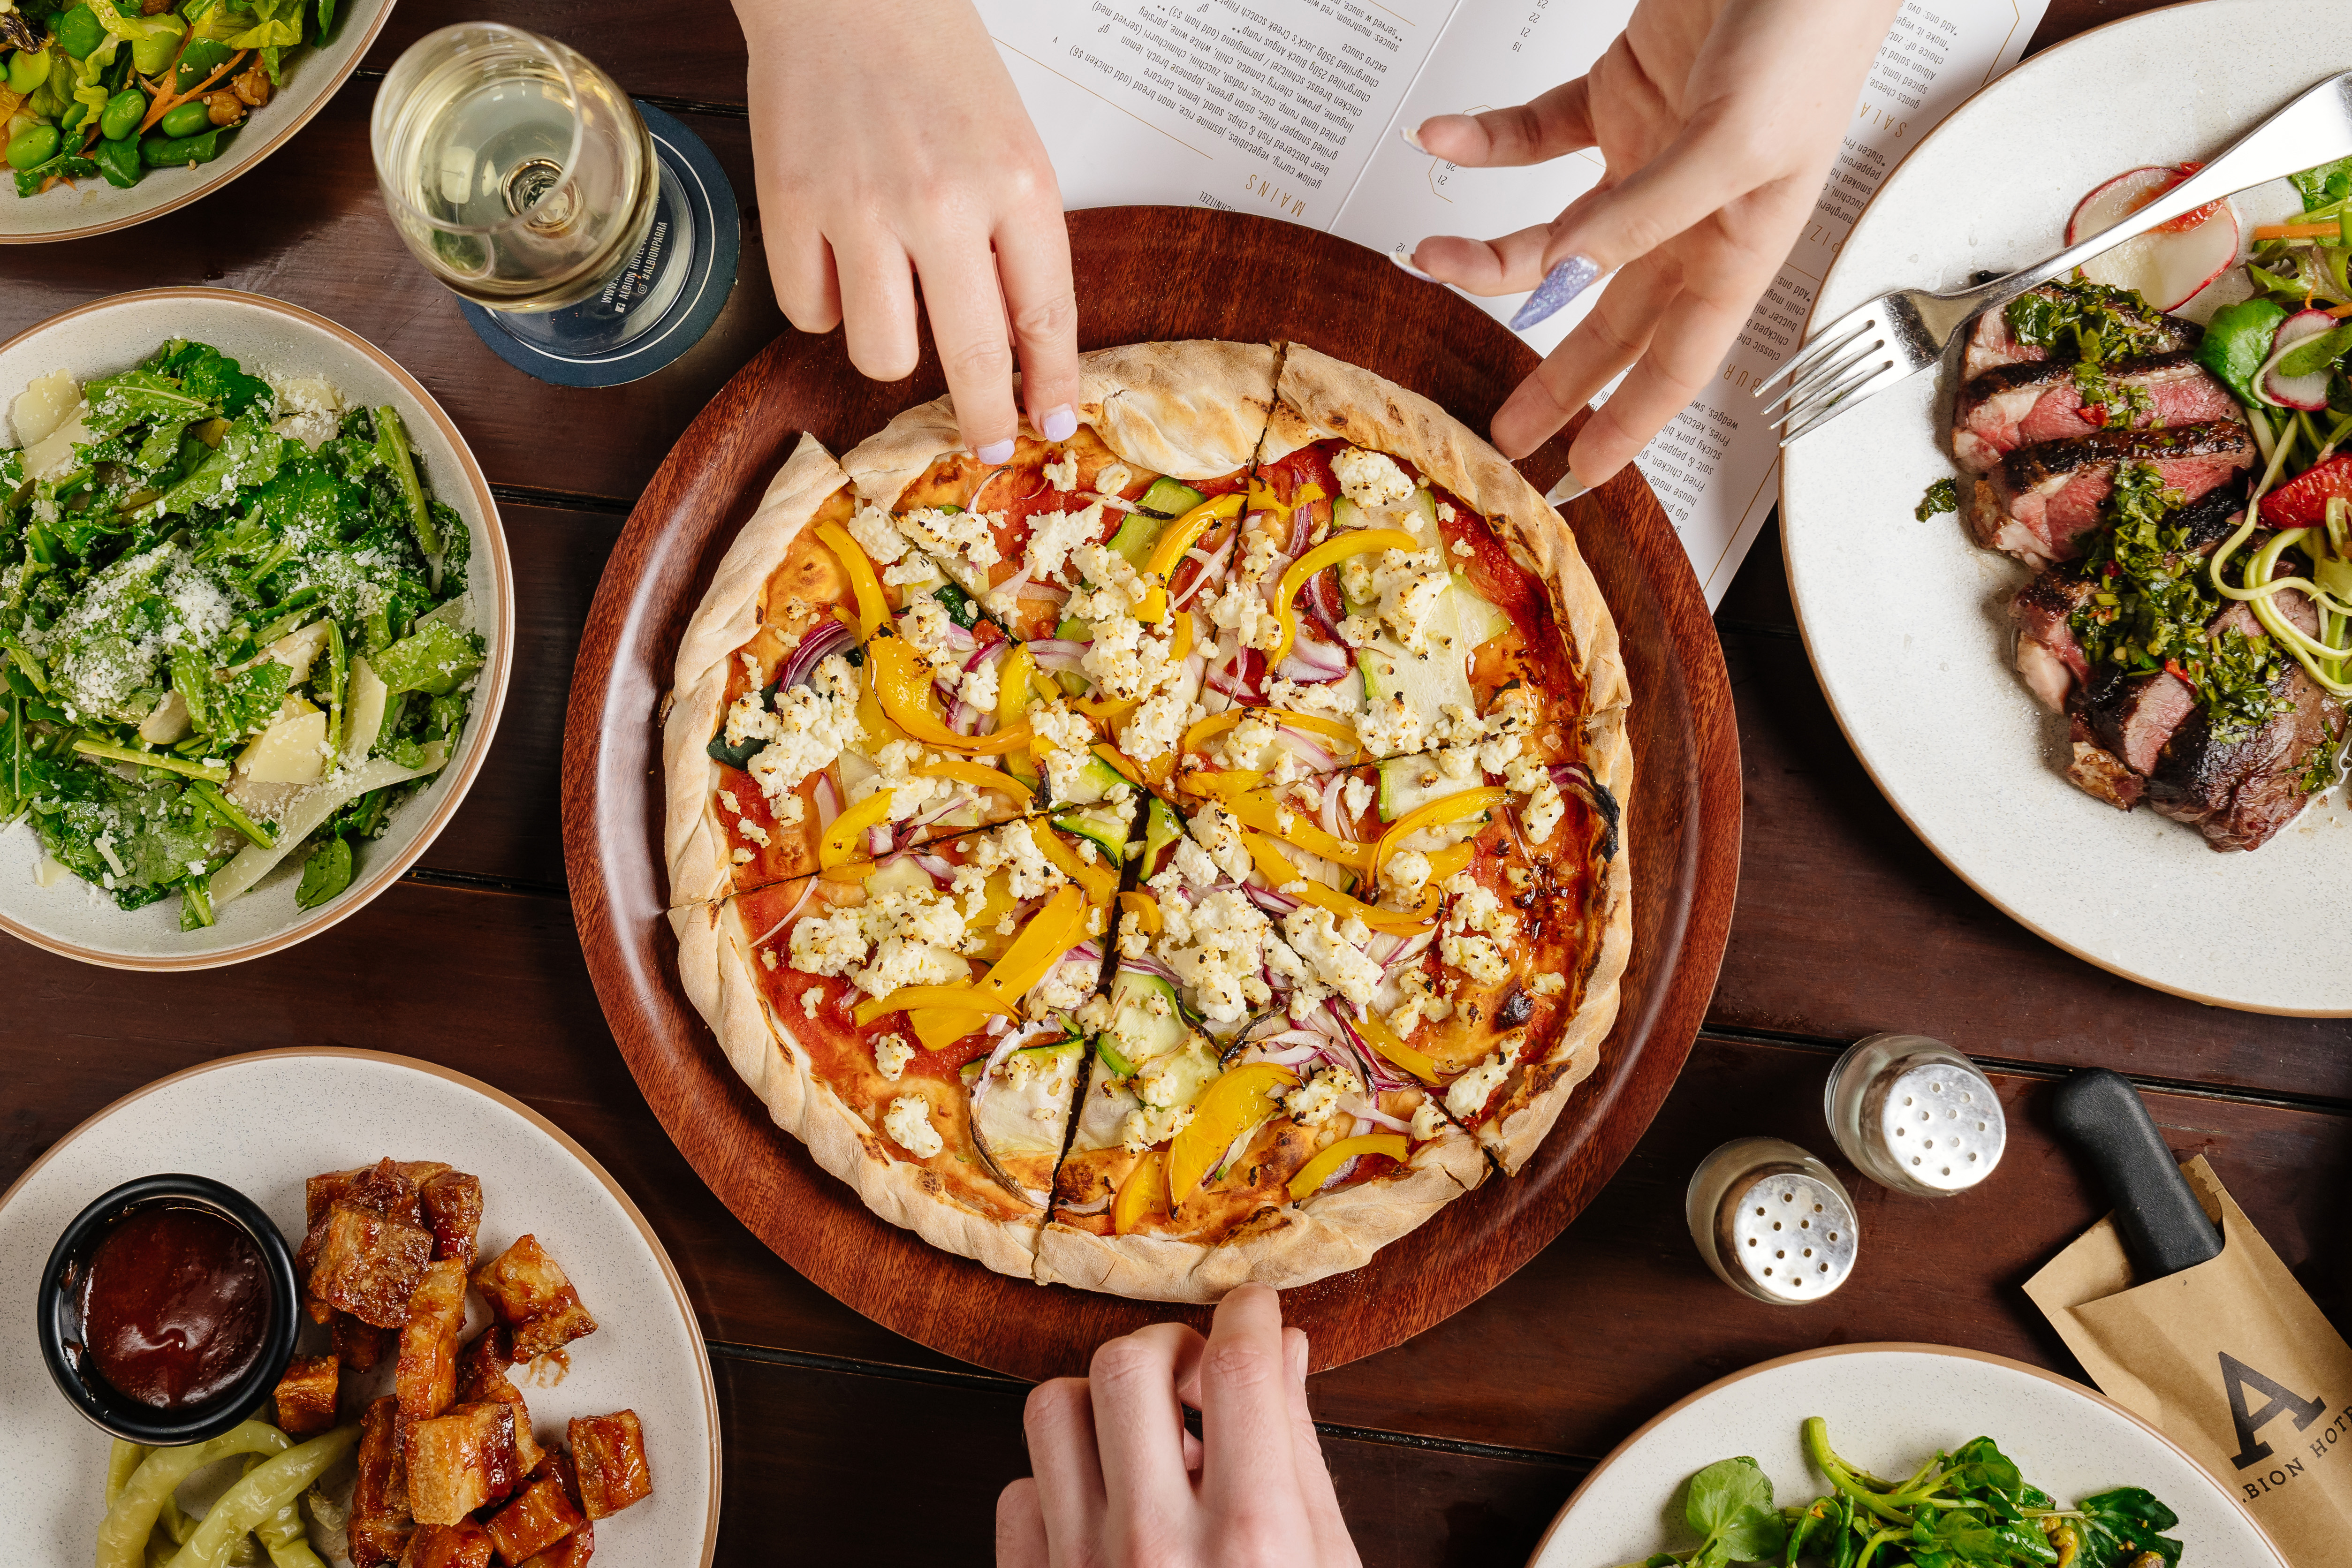 Flatlay of pizza surrounded by side dishes, with hands reaching for a slice